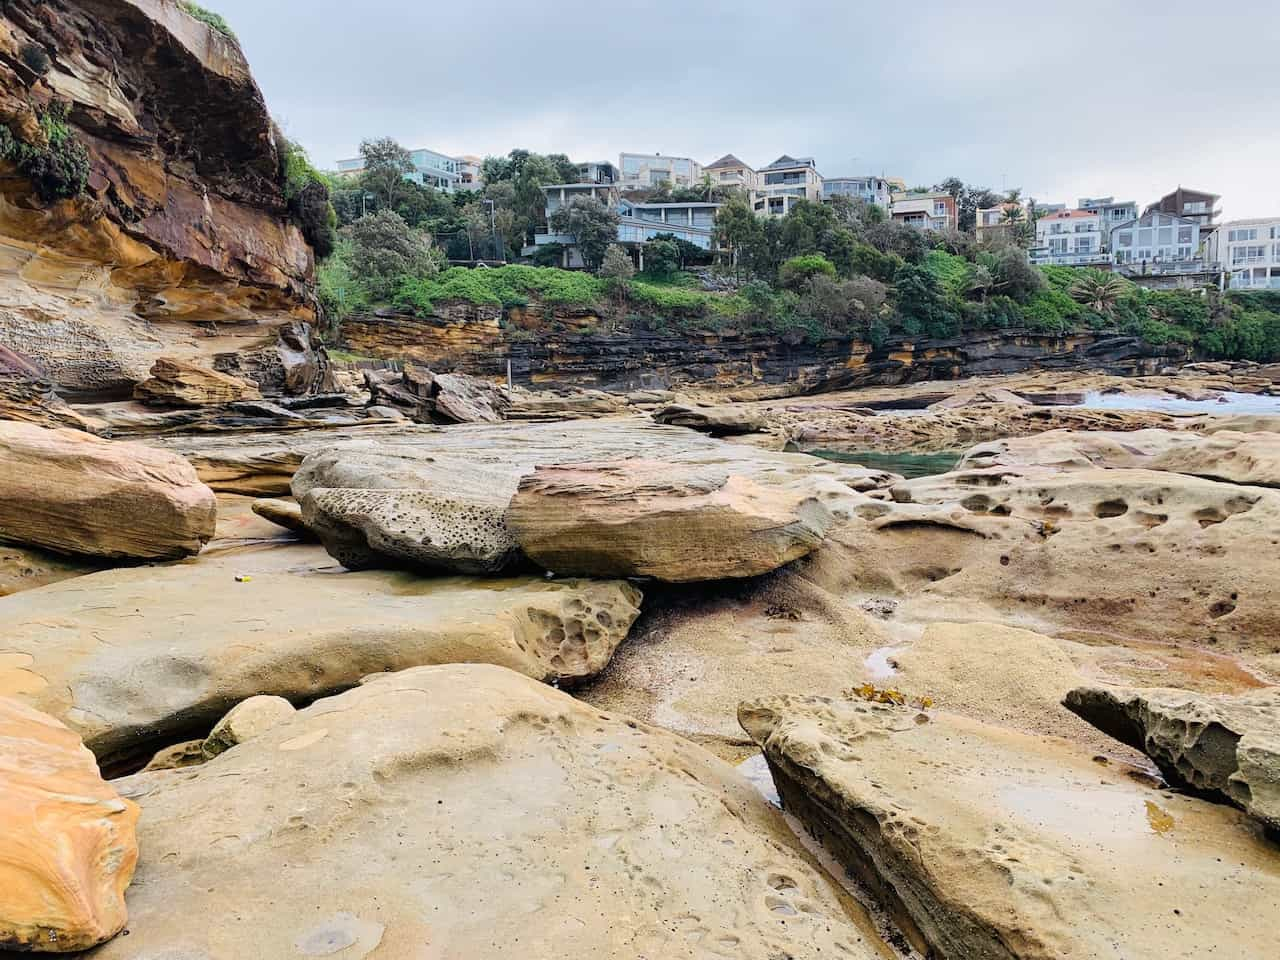 Maroubra to Coogee Rock Path